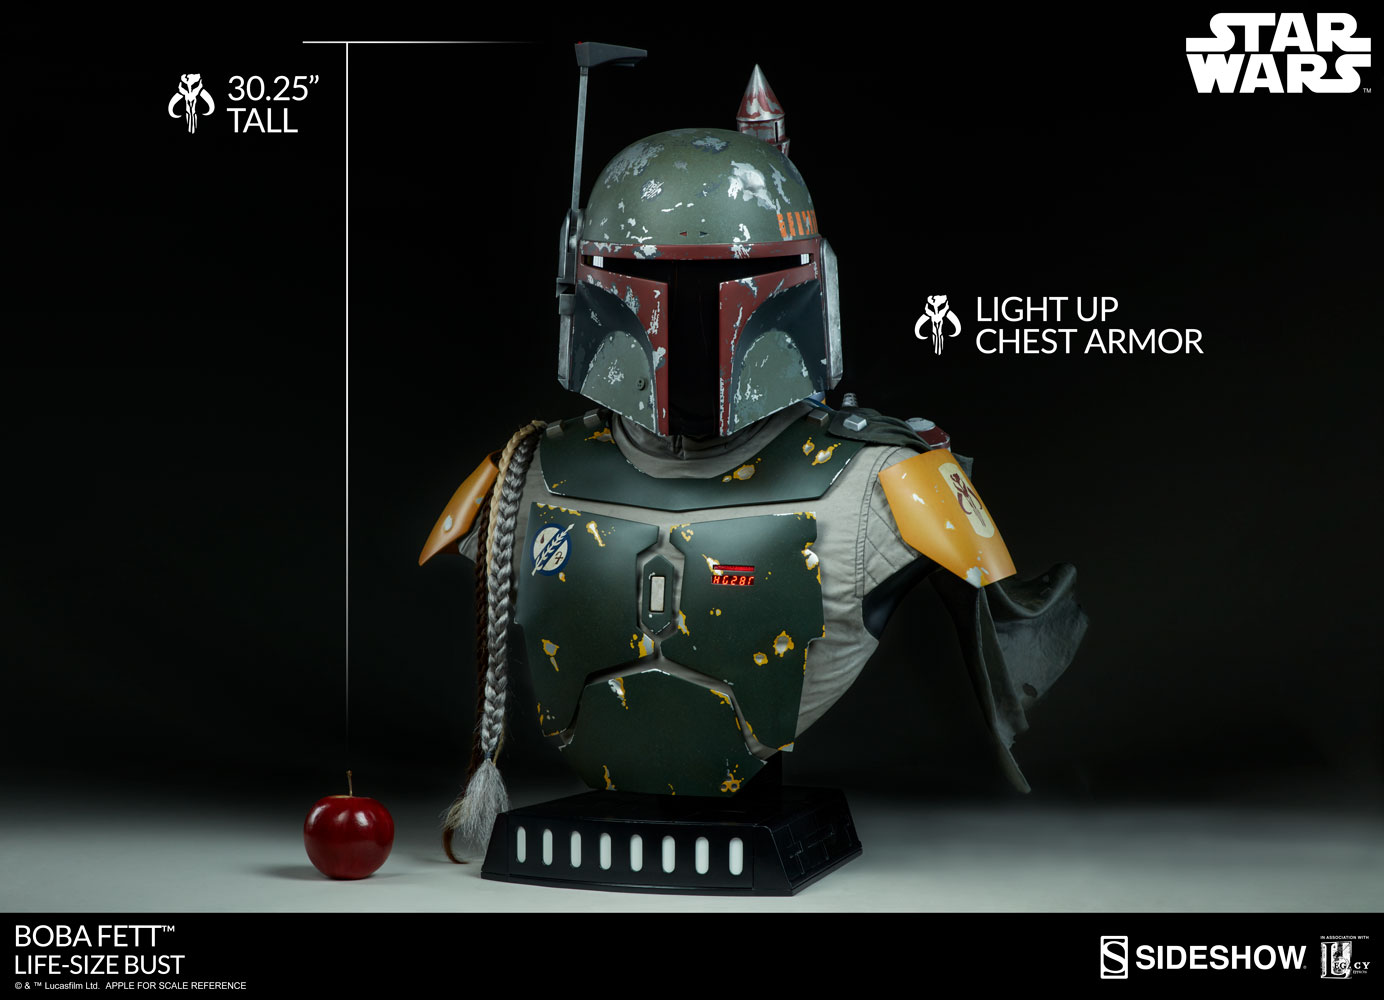 SW-Boba-Gett-life-size-bust-05